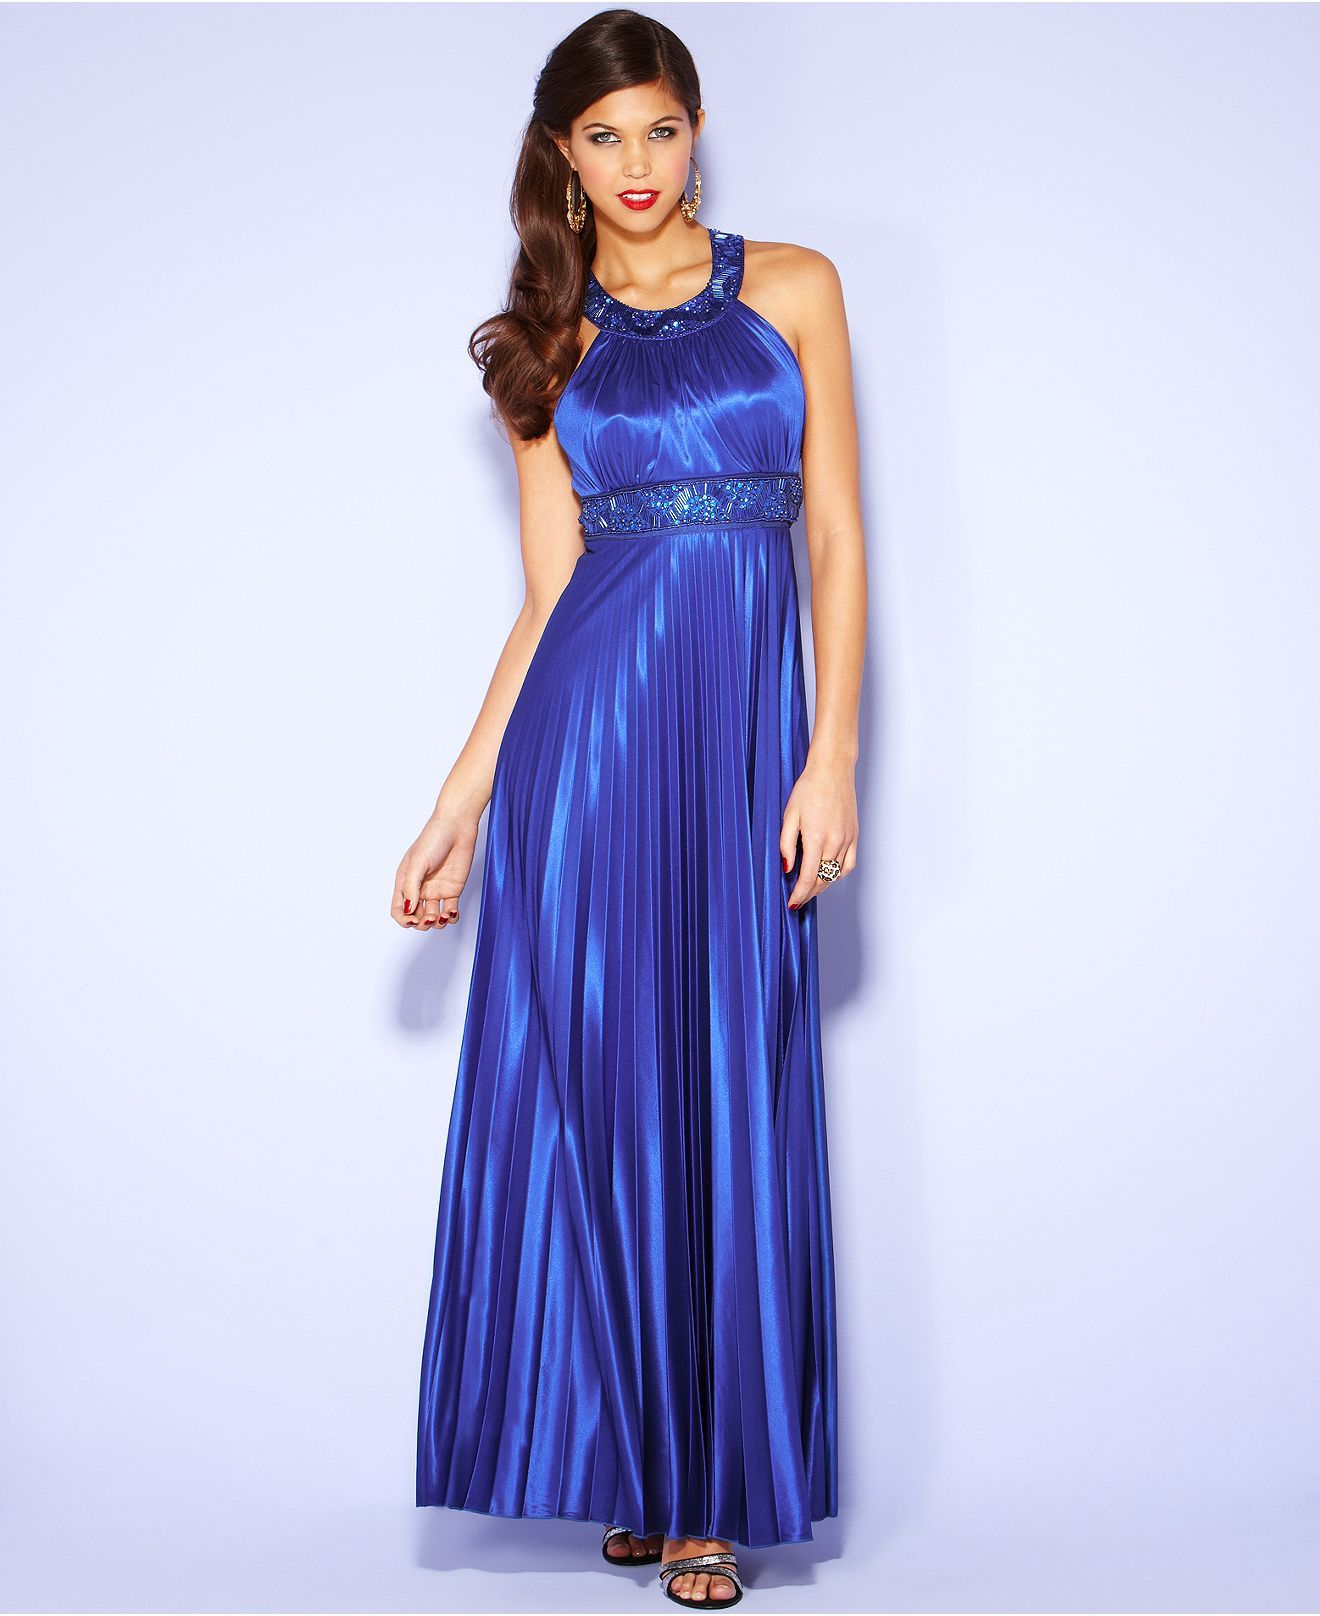 Sequin Hearts Juniors Dress, Sleeveless Pleated Beaded Gown ...